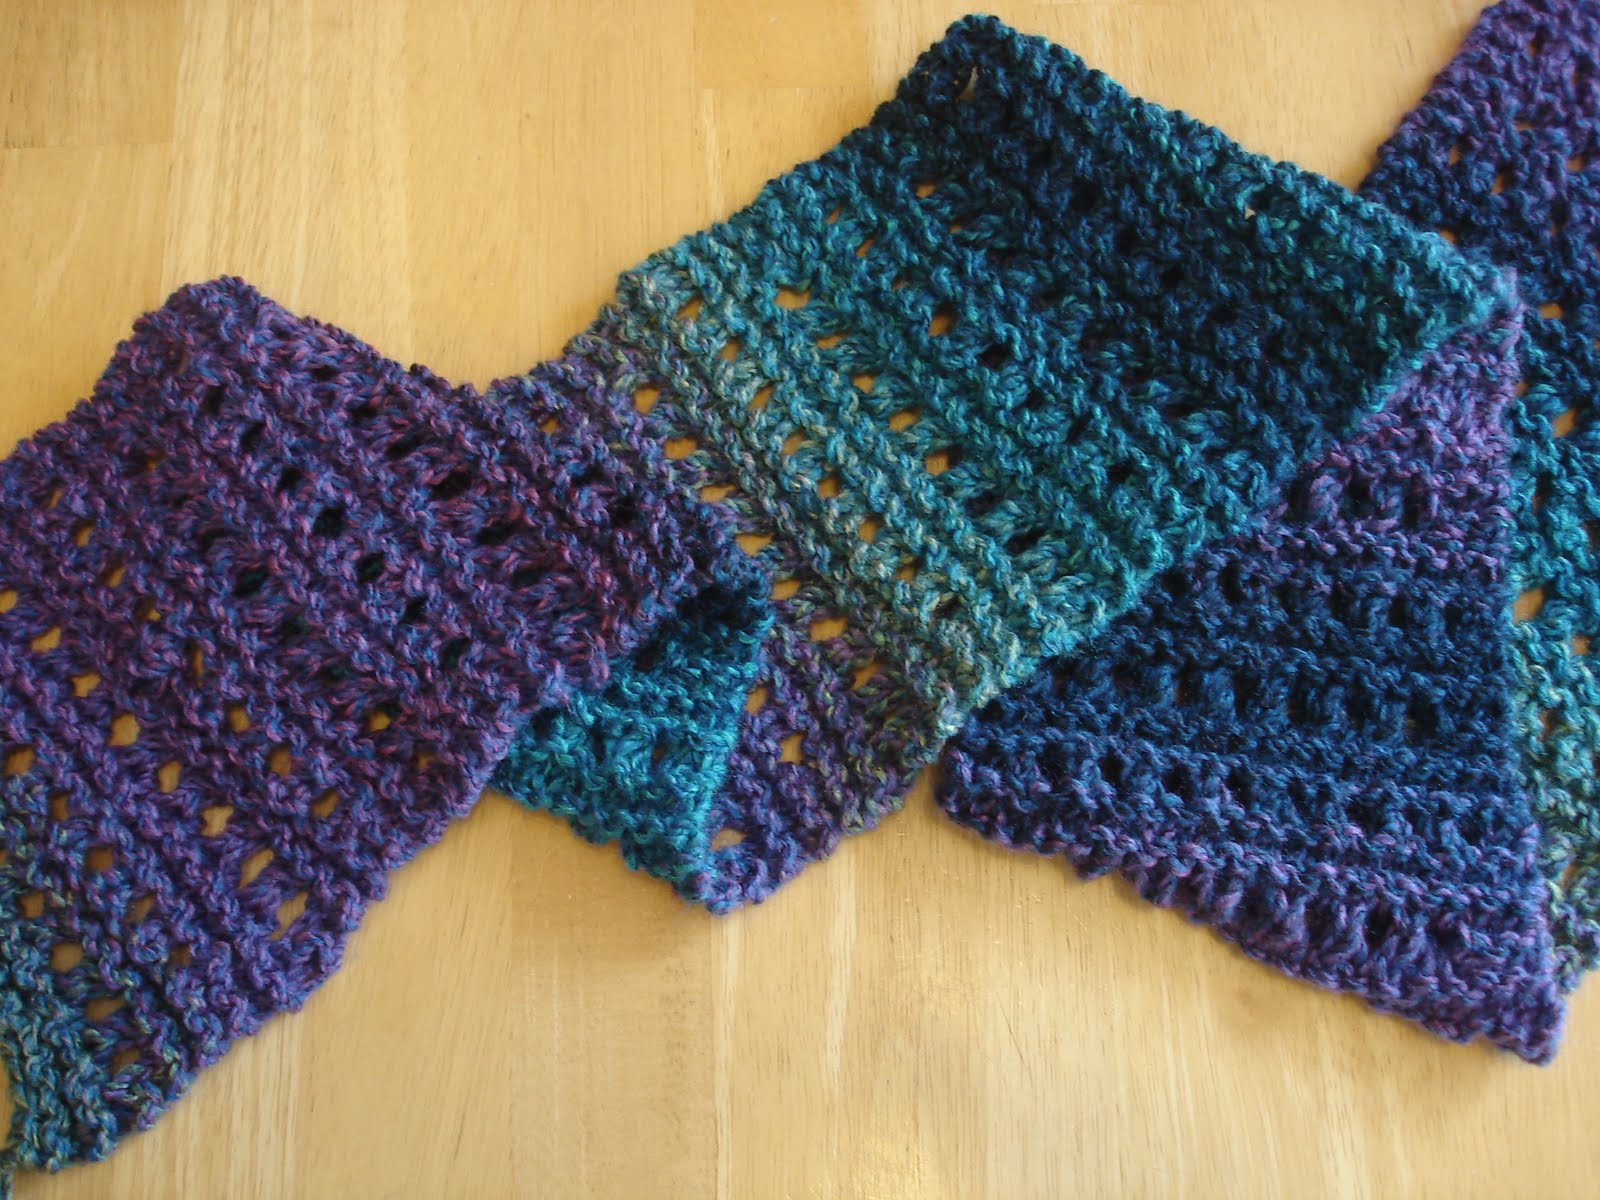 knitting patterns for scarves free knitting patterns. tweedy eyelet scarf vrvlbze